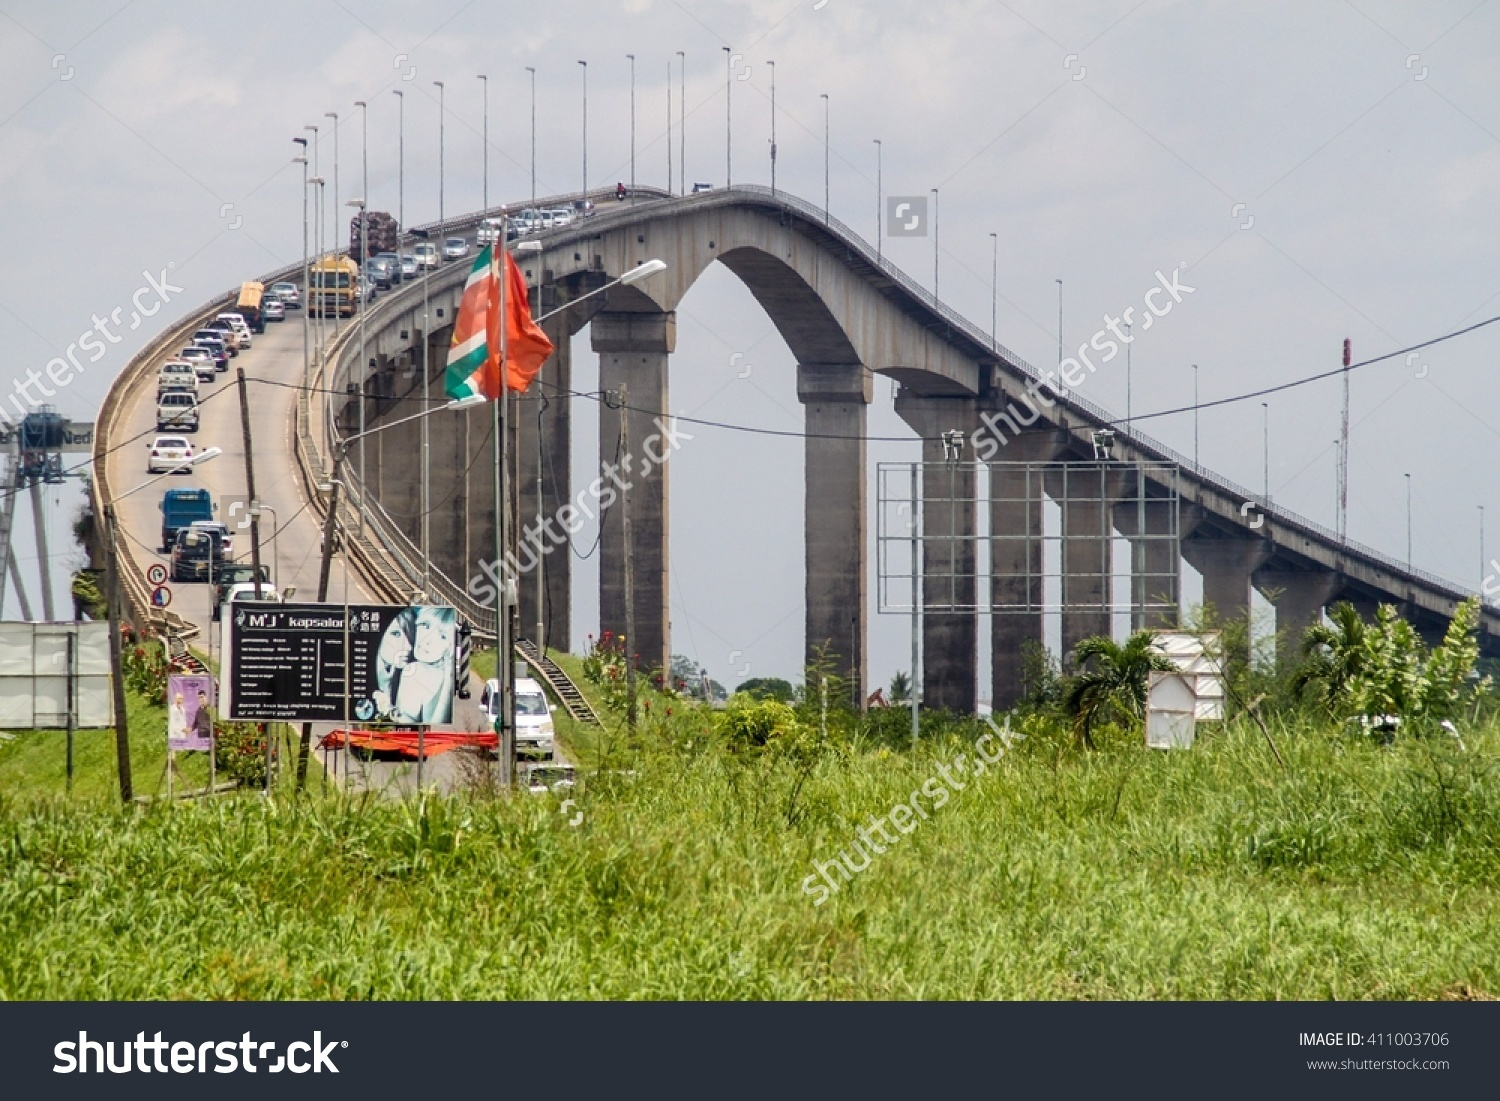 Paramaribo Suriname August 6 2015 Jules Stock Photo 411003706.